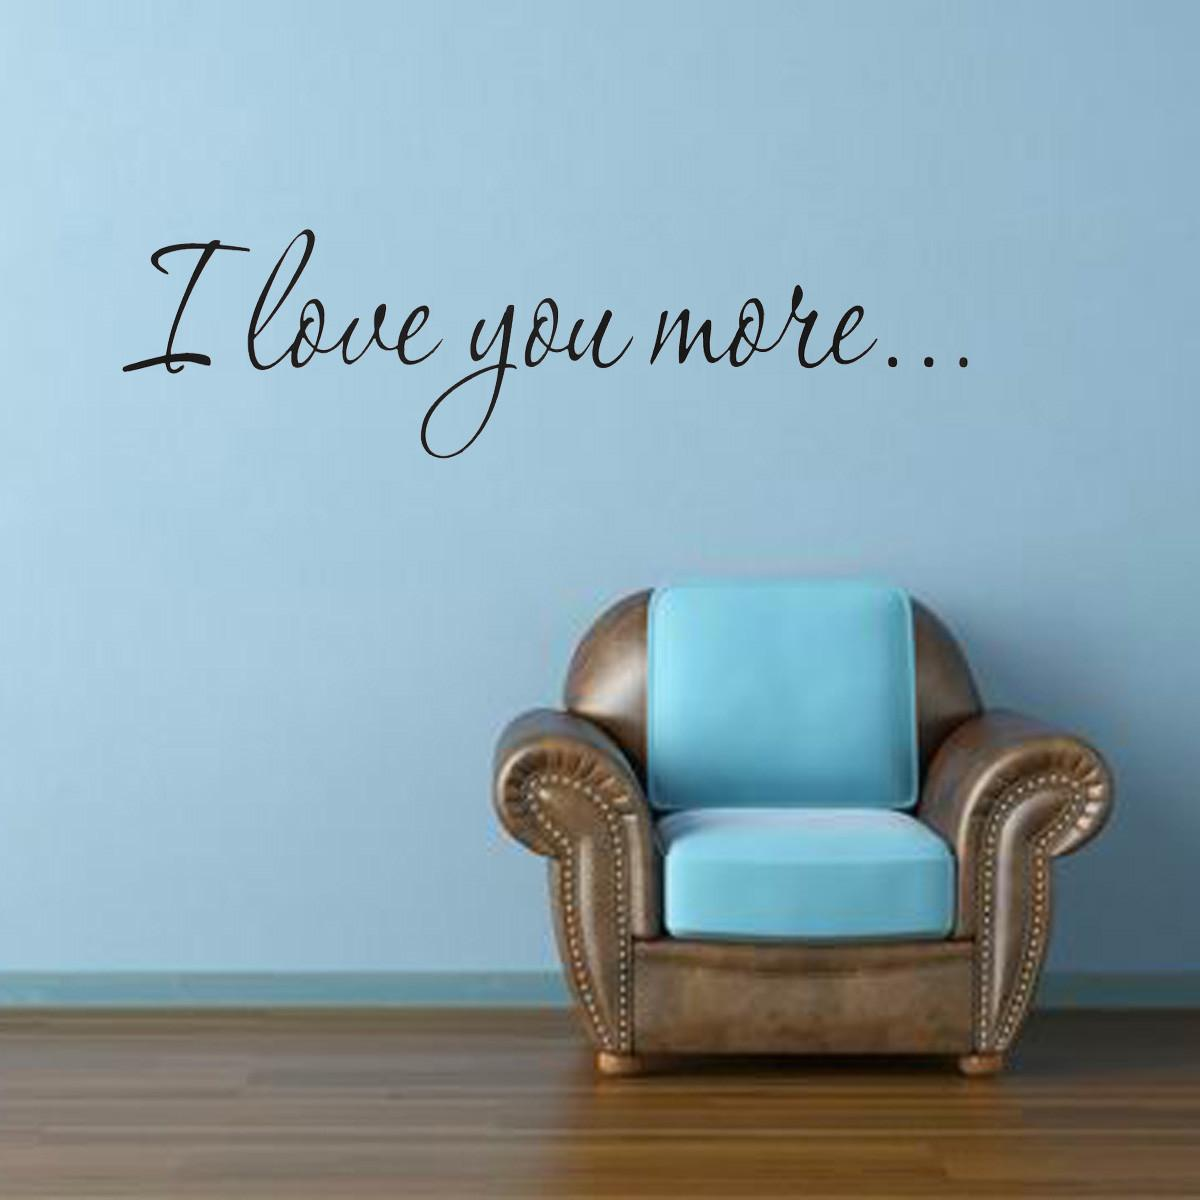 I love you more wall stickers childrens girls nursery room decor see larger image amipublicfo Choice Image